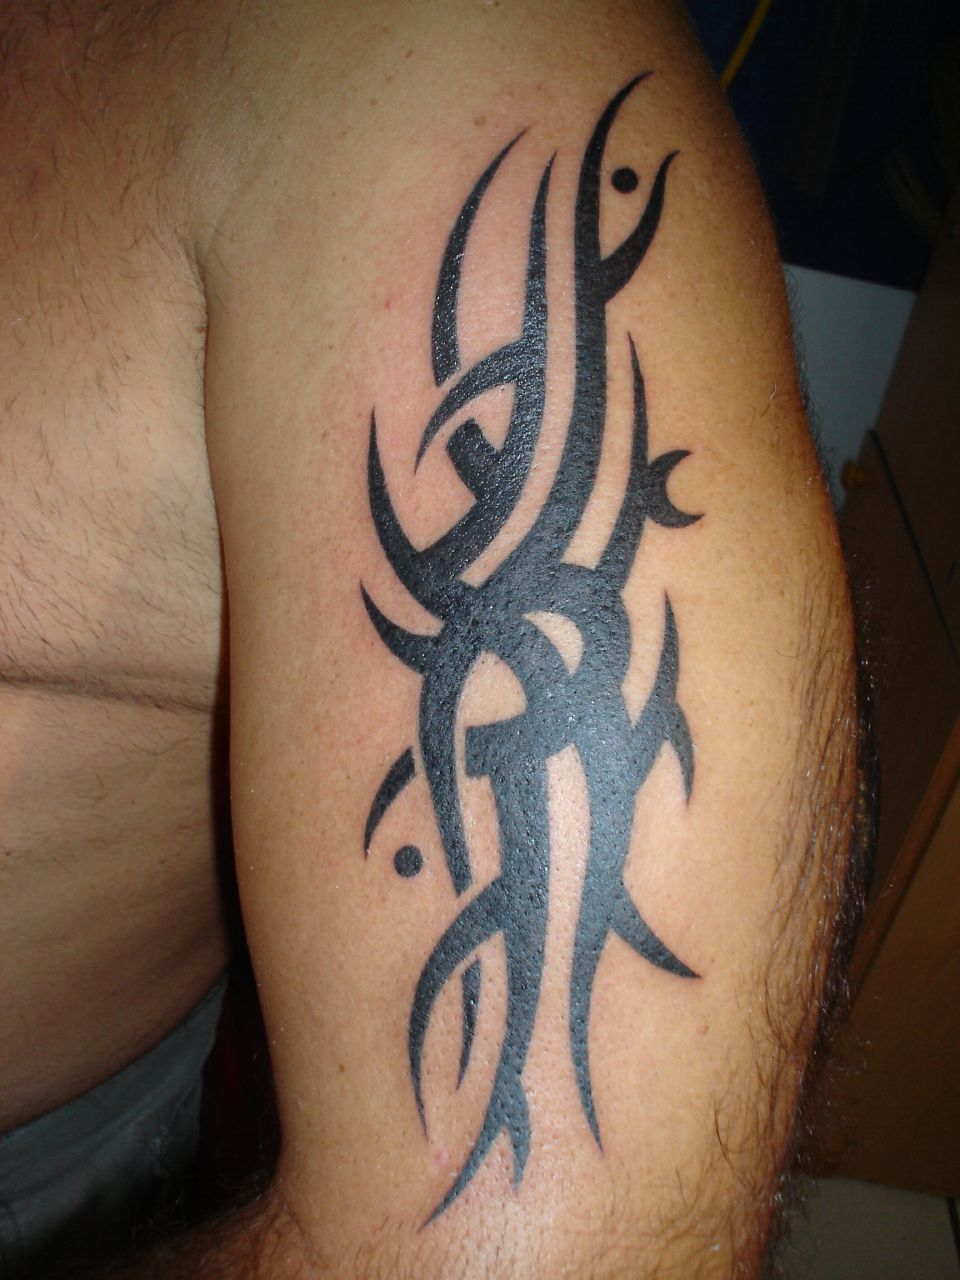 http://www.yusrablog.com/wp-content/uploads/2011/02/Men-Tribal-Arm-Tattoo-Design-Fashion-for-2011.jpg